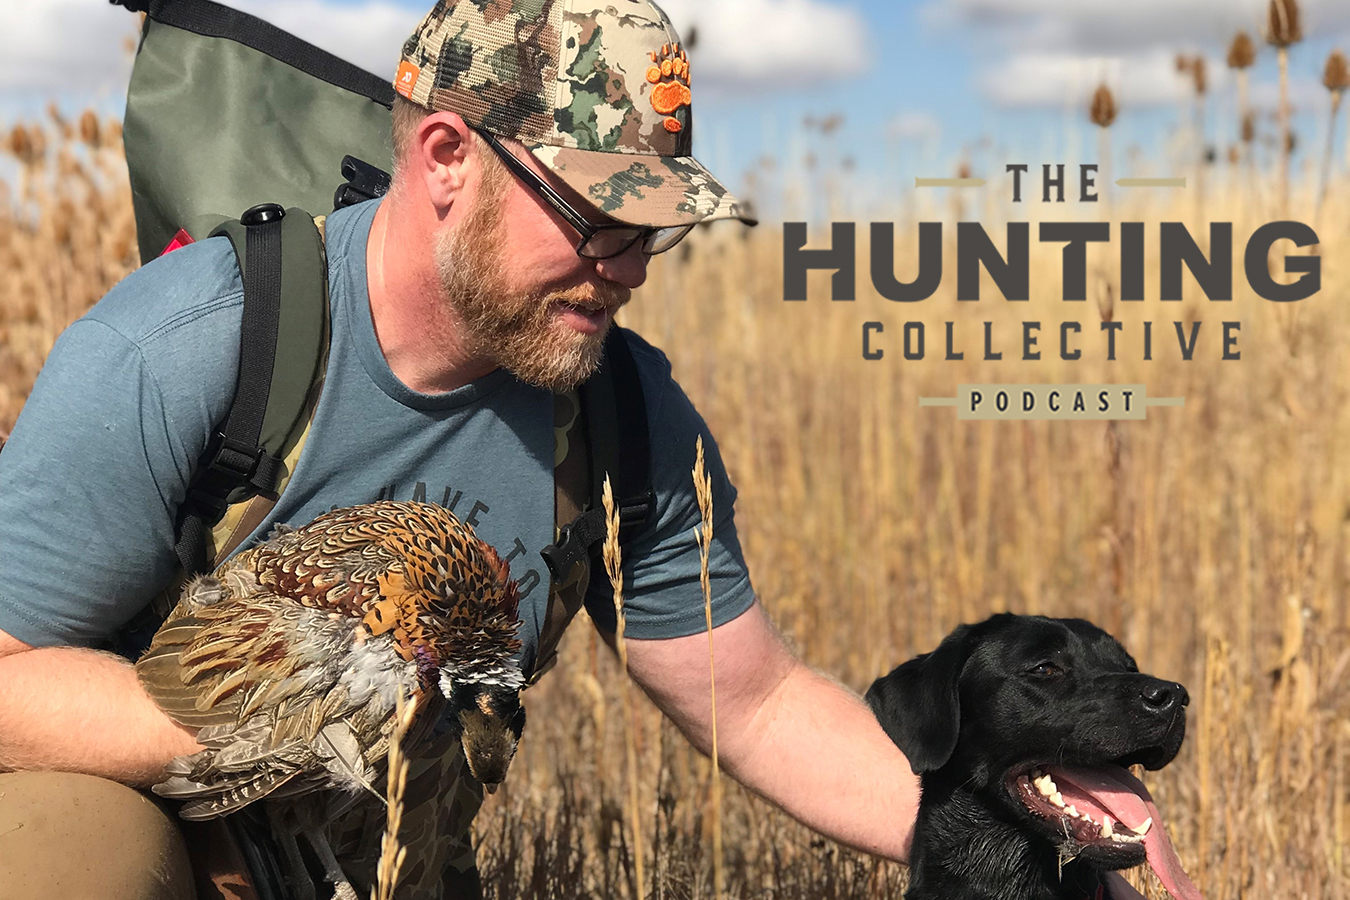 The Hunting Collective | Podbay